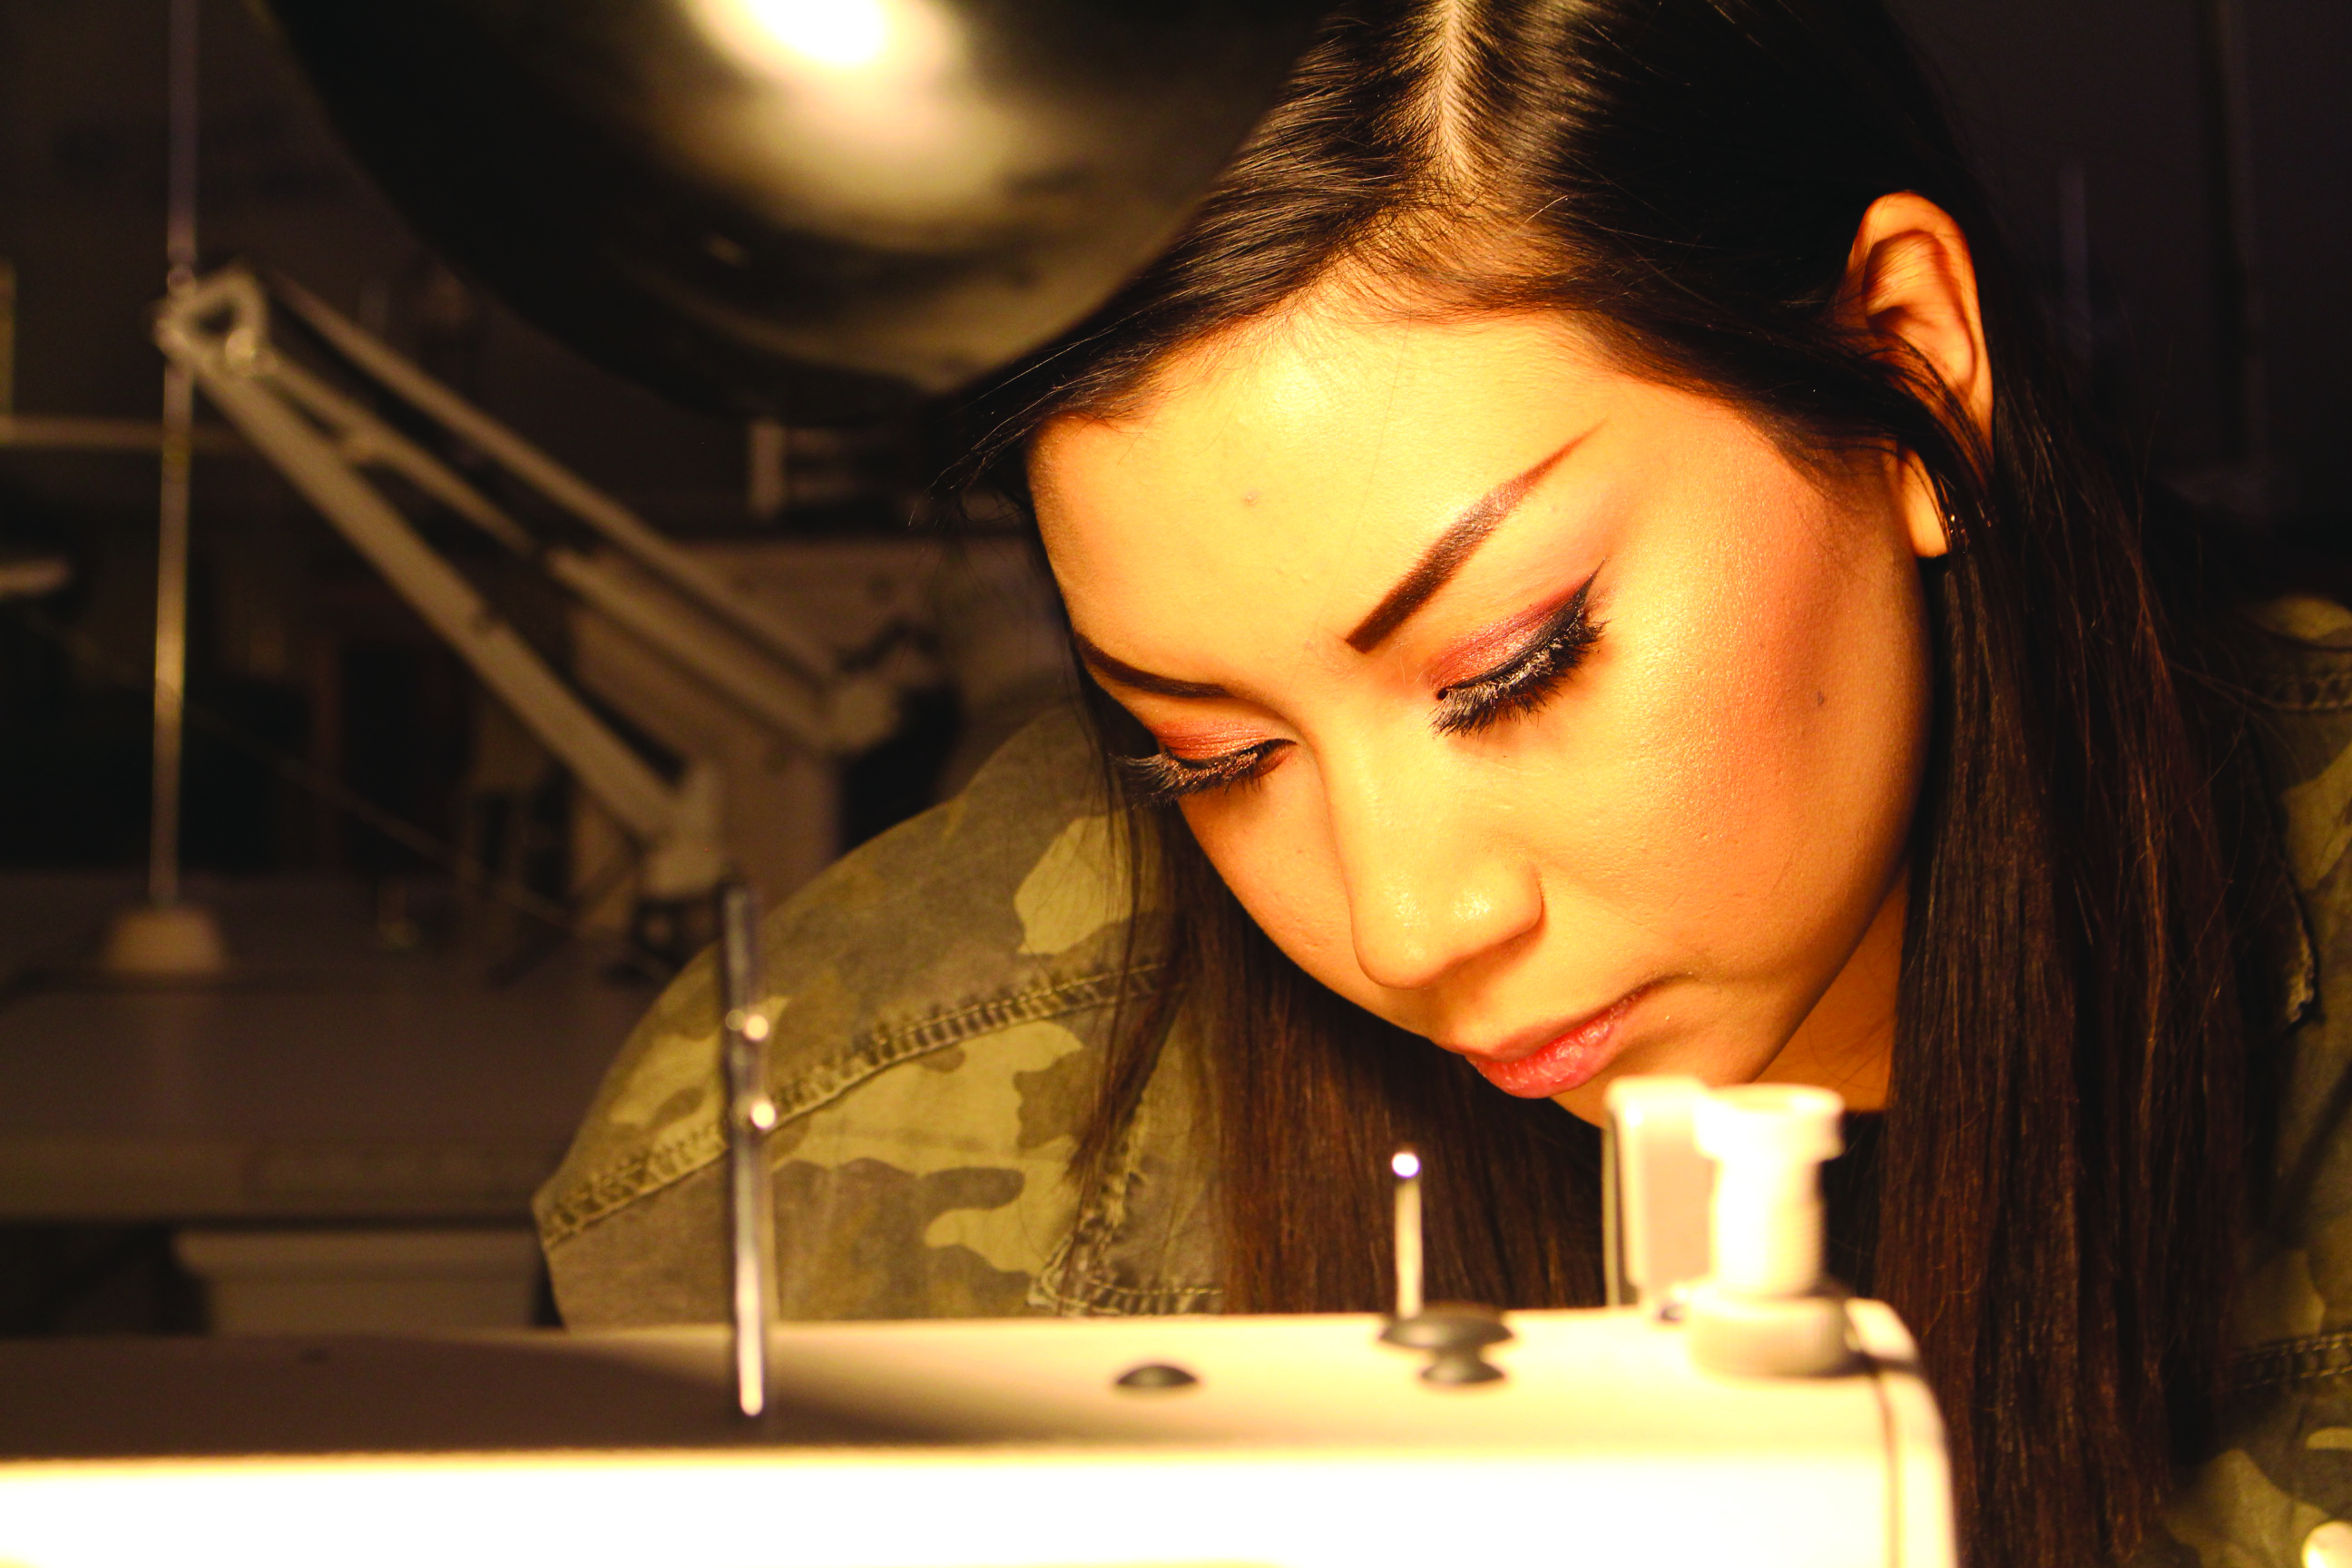 Tiara Crow Flag, works intently on surging her fabric together for an assignment in the Lethbridge College Sewing Labs on October 30, 2017.